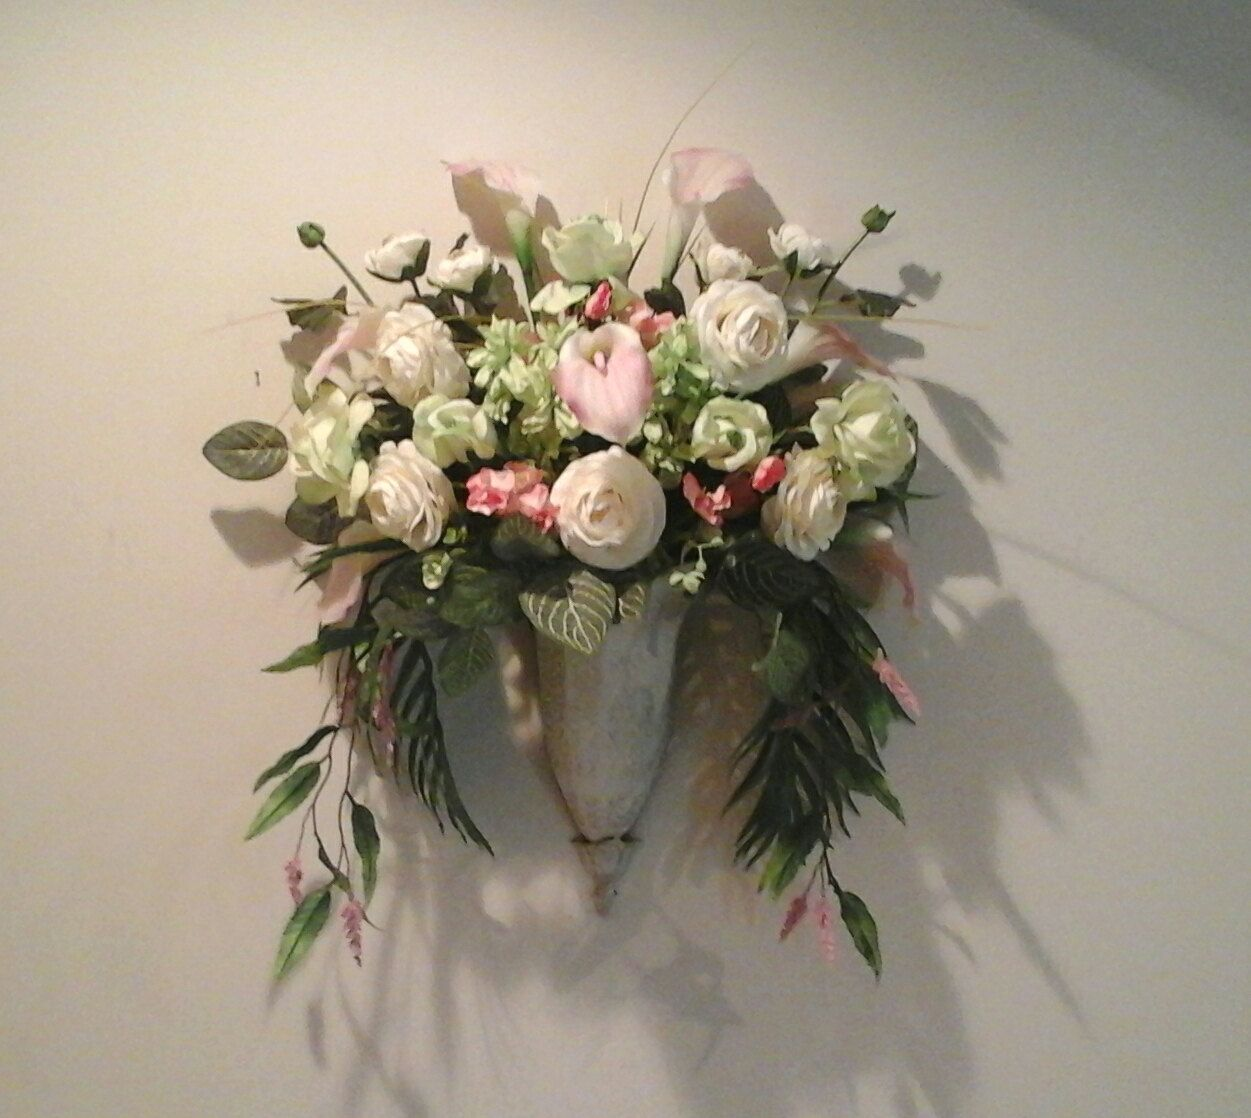 Floral wall arrangement wall planter wall sconce wall pocket floral wall arrangement wall planter wall sconce wall pocket elegant real touch mightylinksfo Image collections